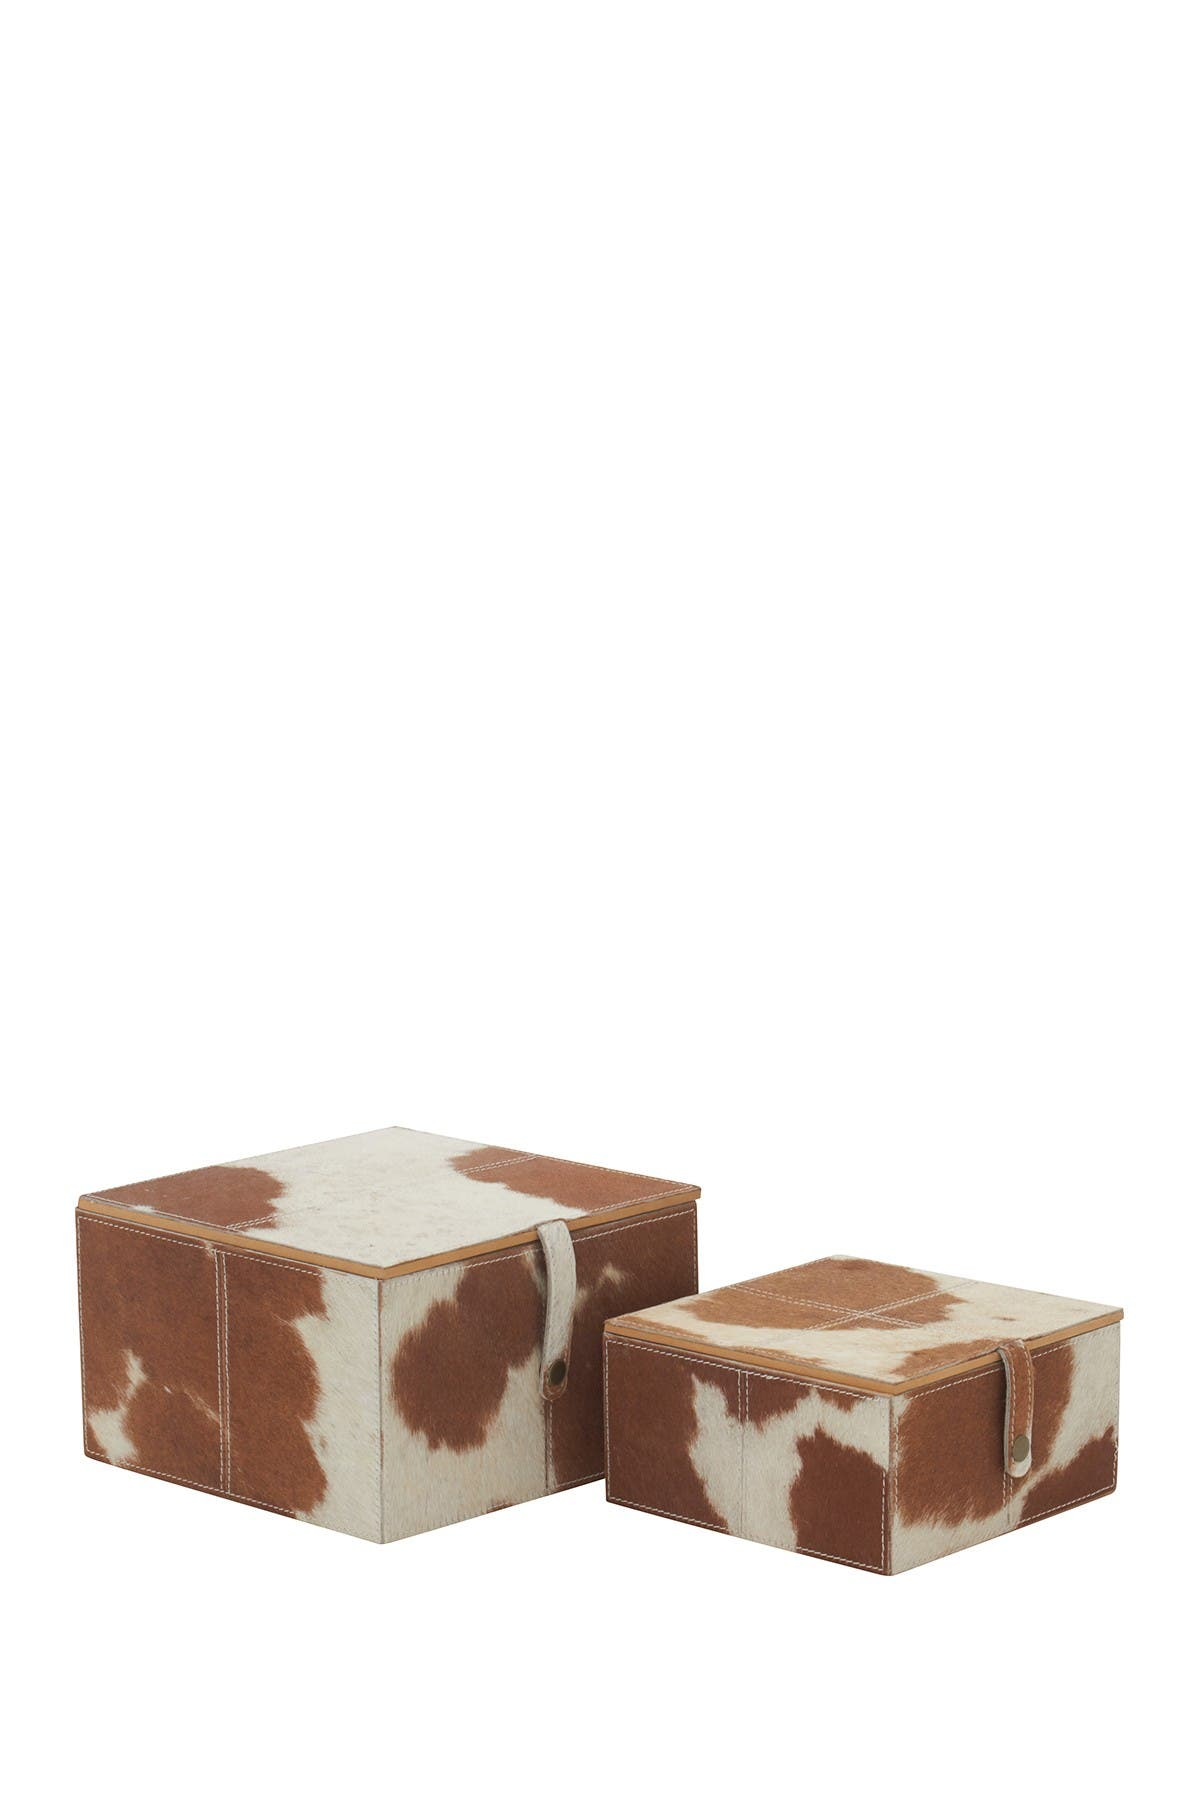 Image of Willow Row Square Brown and White Cowhide Leather Decorative Boxes - Set of 2